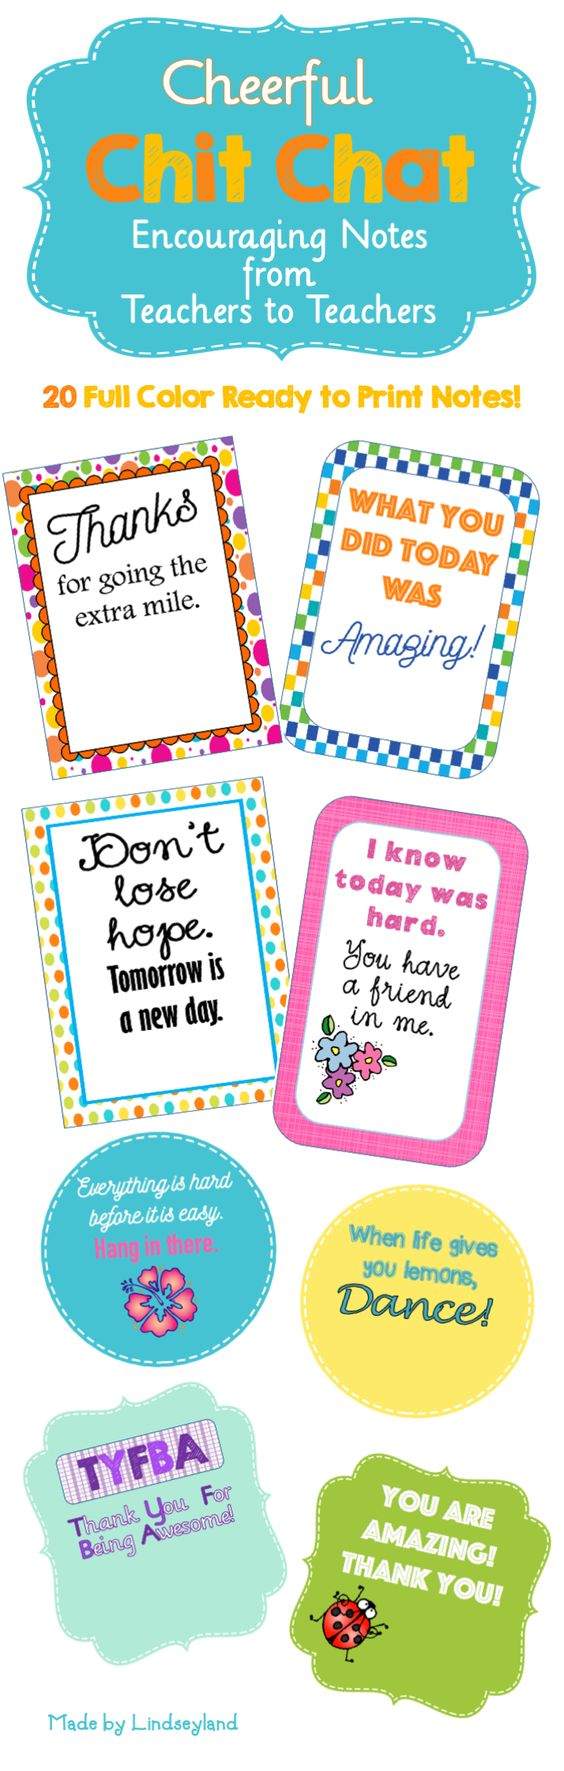 Cheerful Chit Chats Are Designed As A Tool For Co Workers To Easily Encourage One Another 20 Full Color And B W Notes Come Ready Print